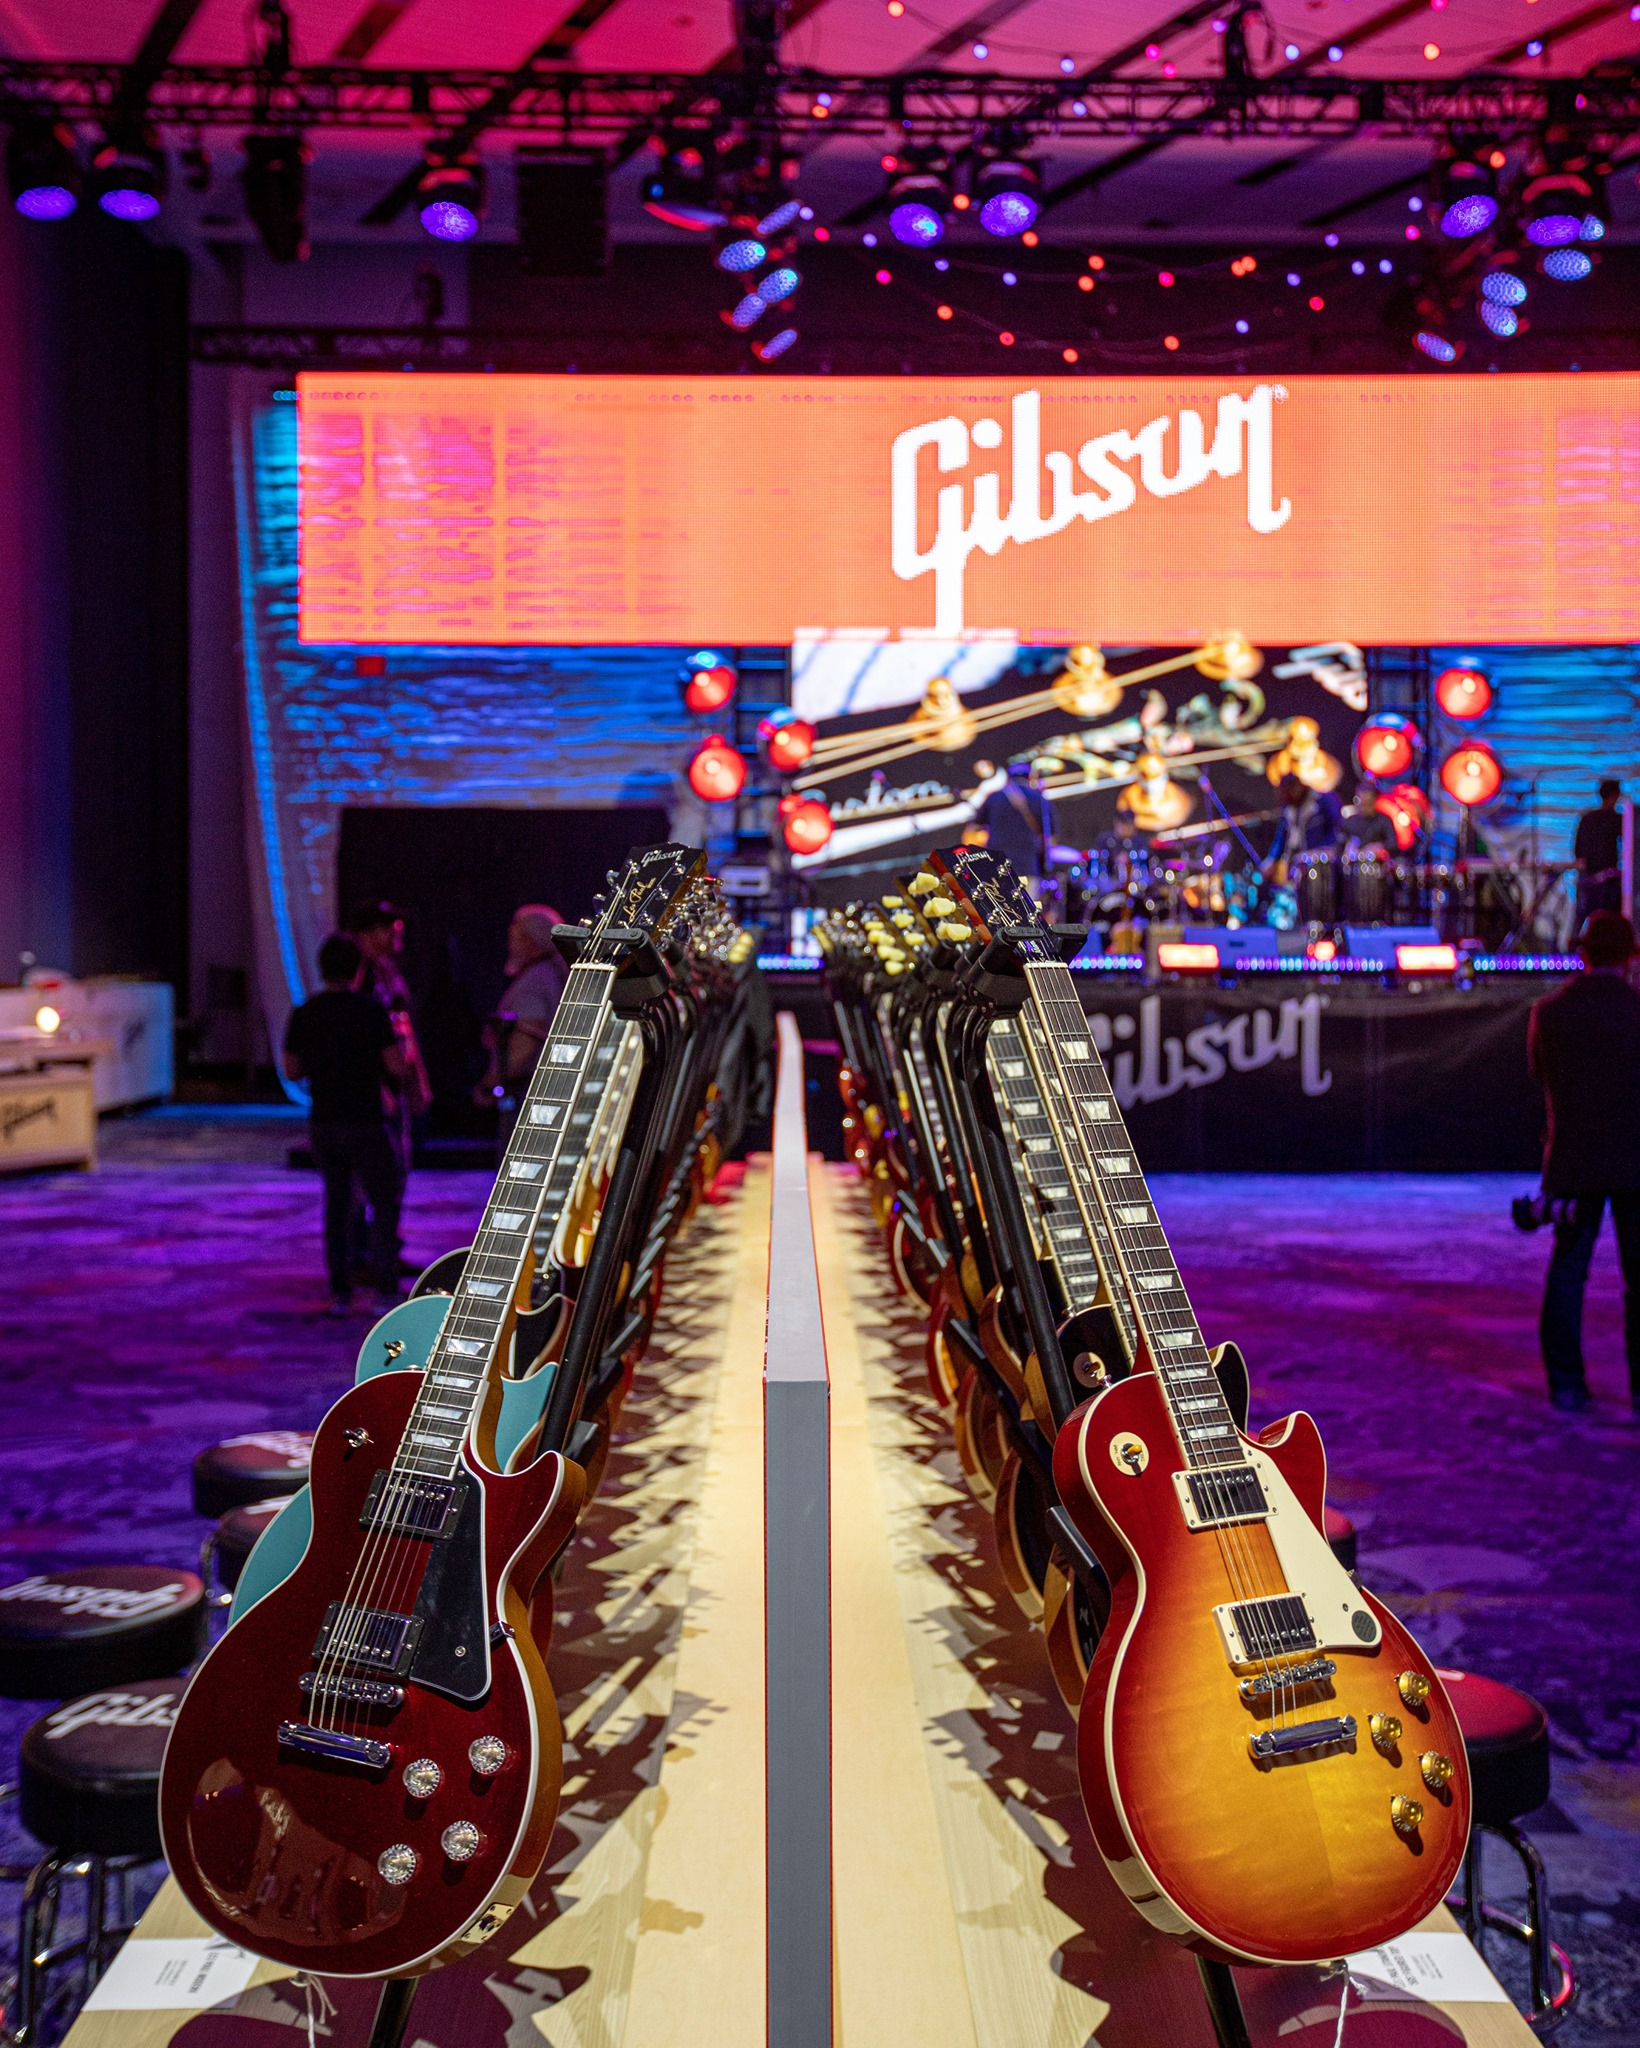 Jerry Cantrell, Robby Krieger, Orianthi, Celisse and More at GIBSON: NAMM Daily Artist Events Announced